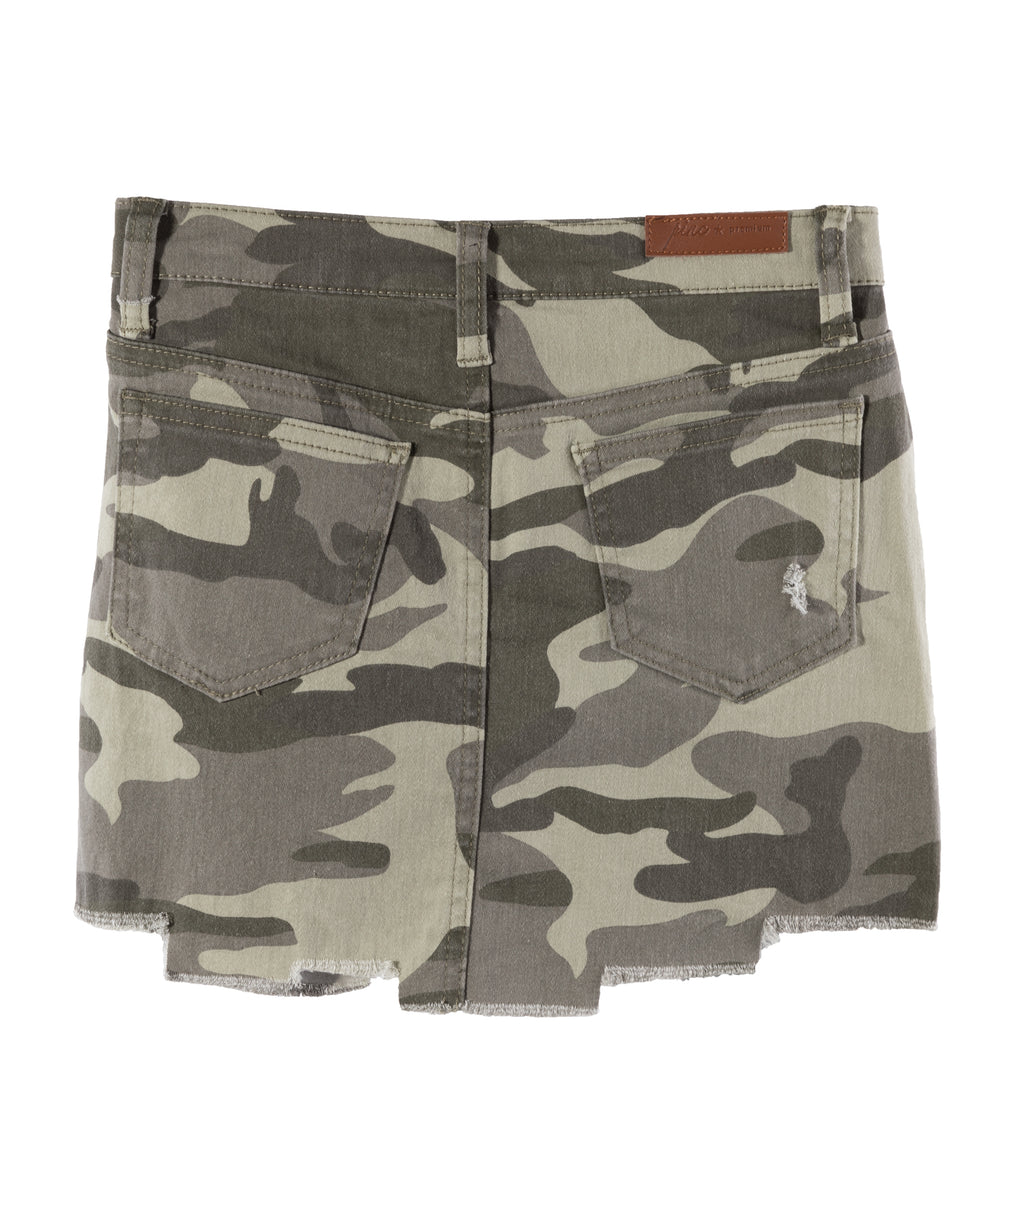 Pinc Premium Girls Camo Skirt